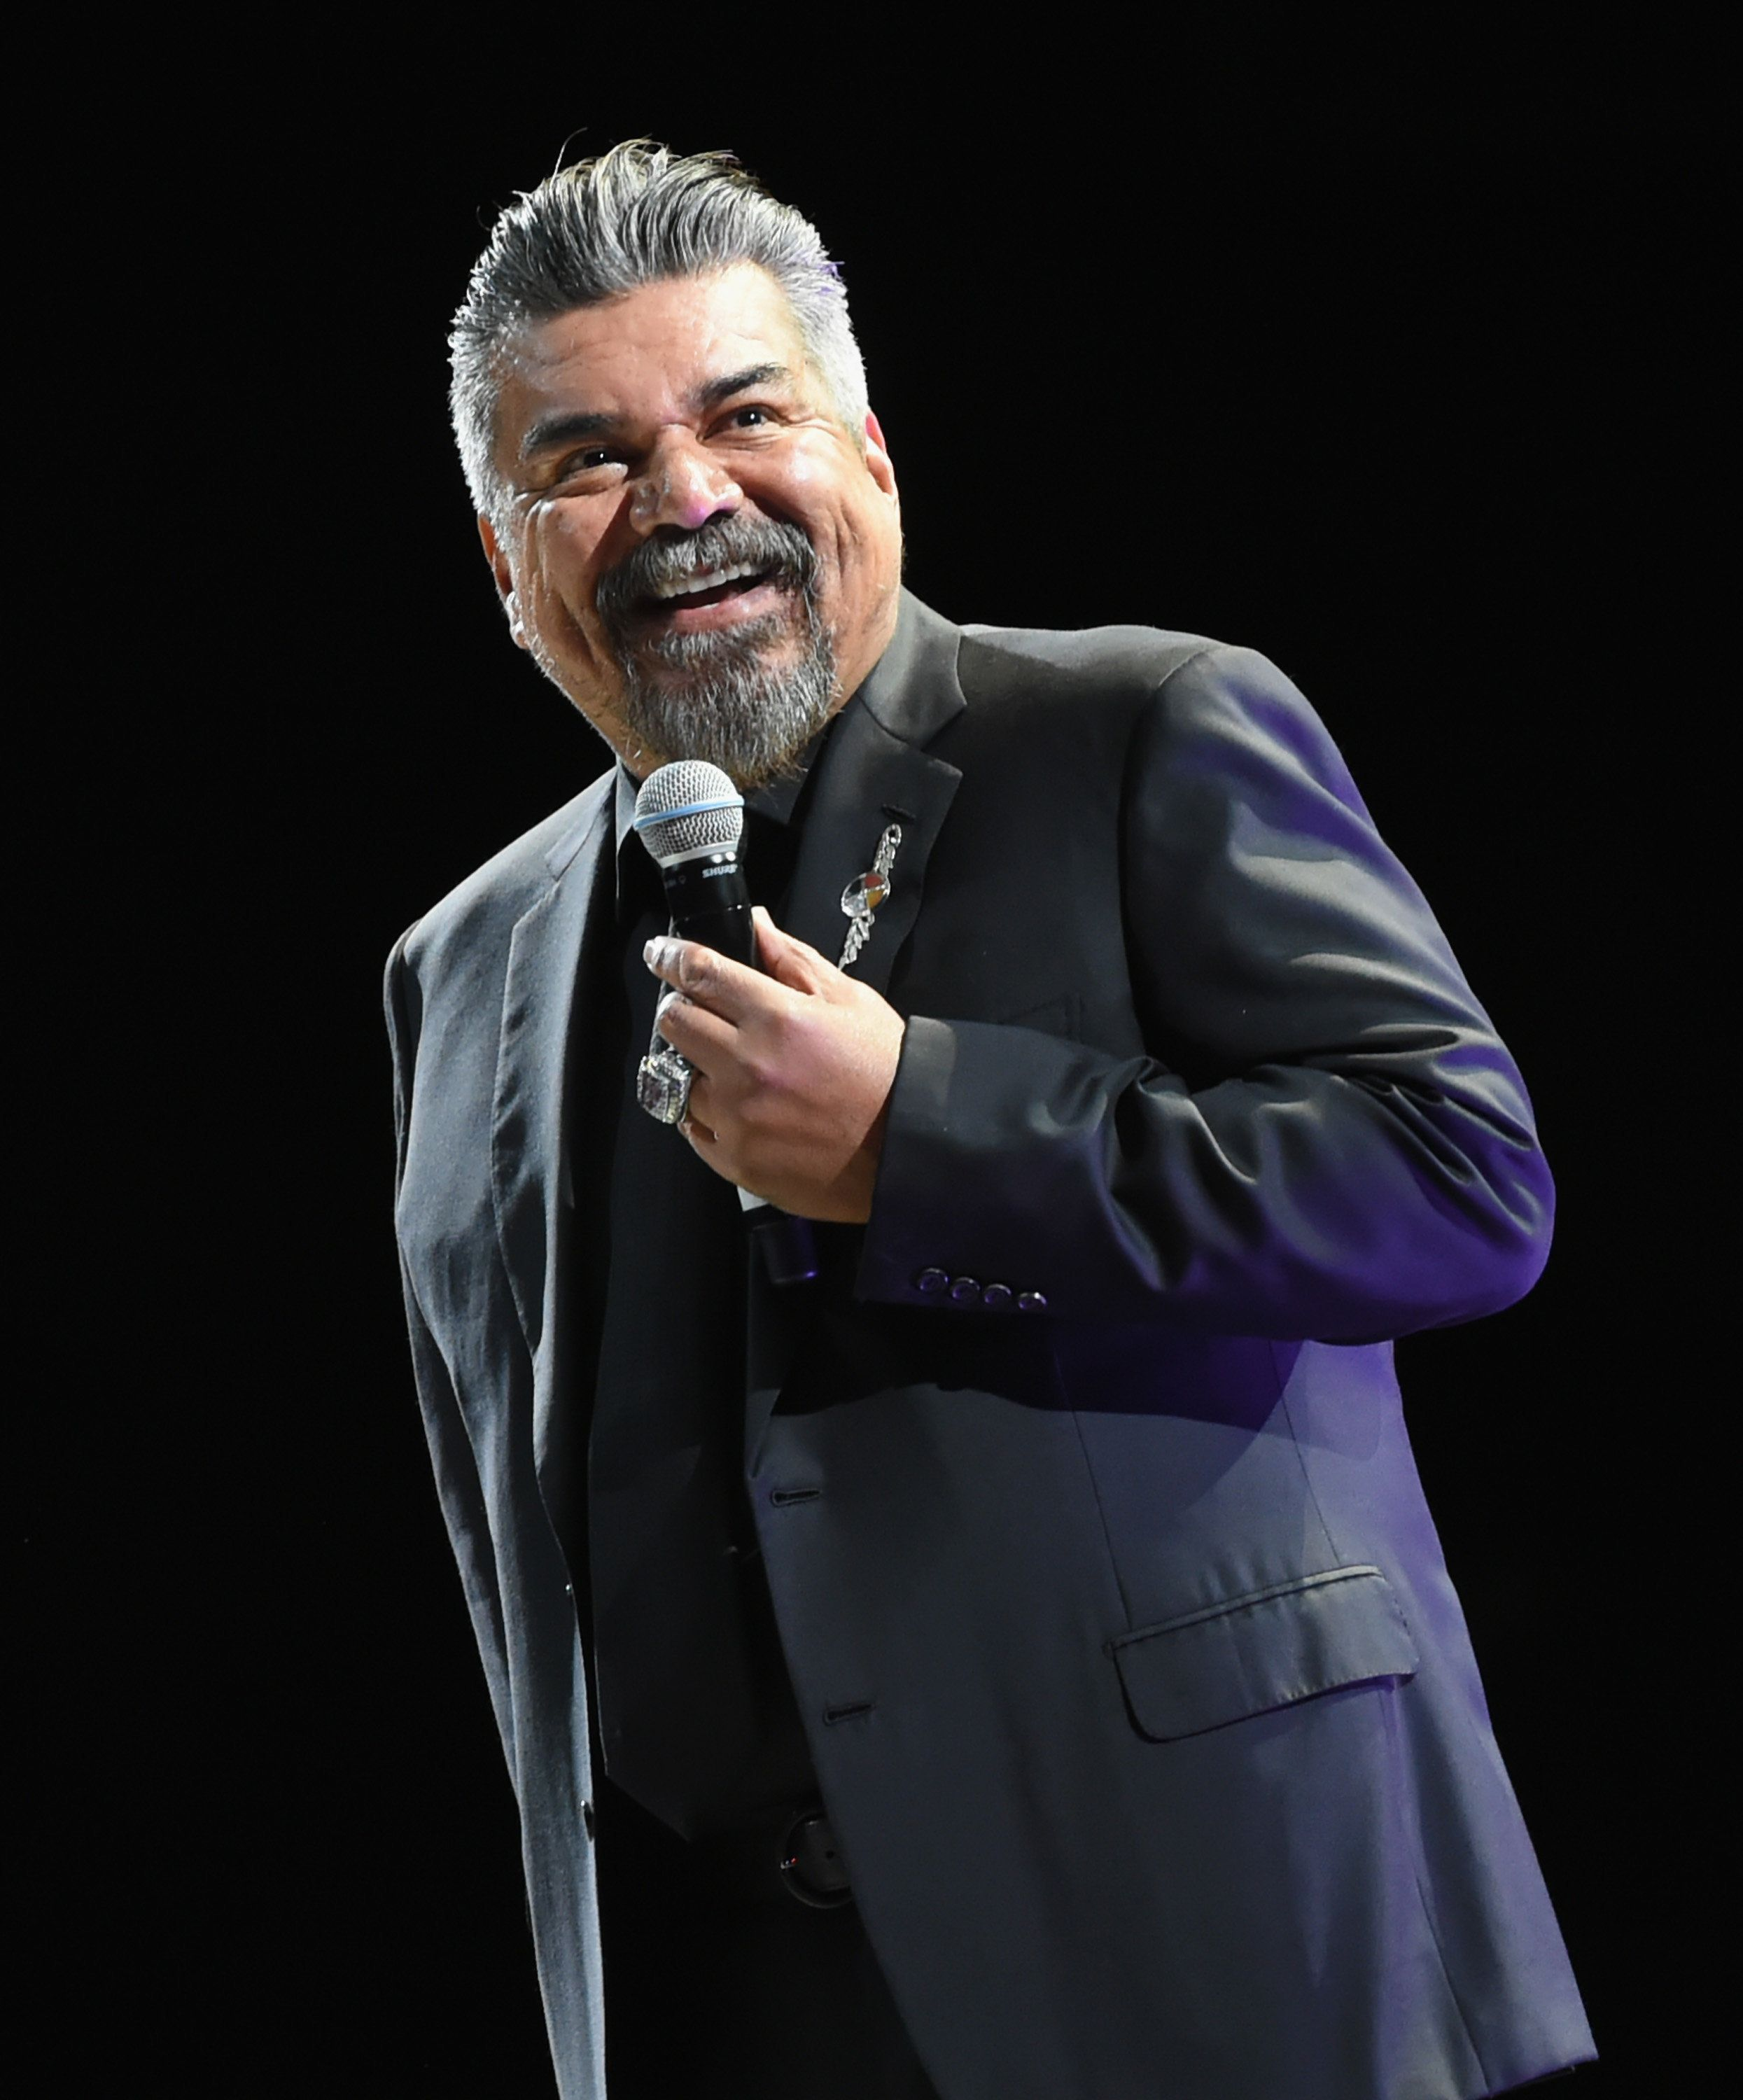 NASHVILLE, TN - APRIL 21:  The Comedy Get Down Tour featuring Comedian George Lopez performs during Nashville Comedy Festival at Bridgestone Arena on April 21, 2018 at The Ryman Auditorium in Nashville, Tennessee.  (Photo by Rick Diamond/Getty Images for Outback Concerts)